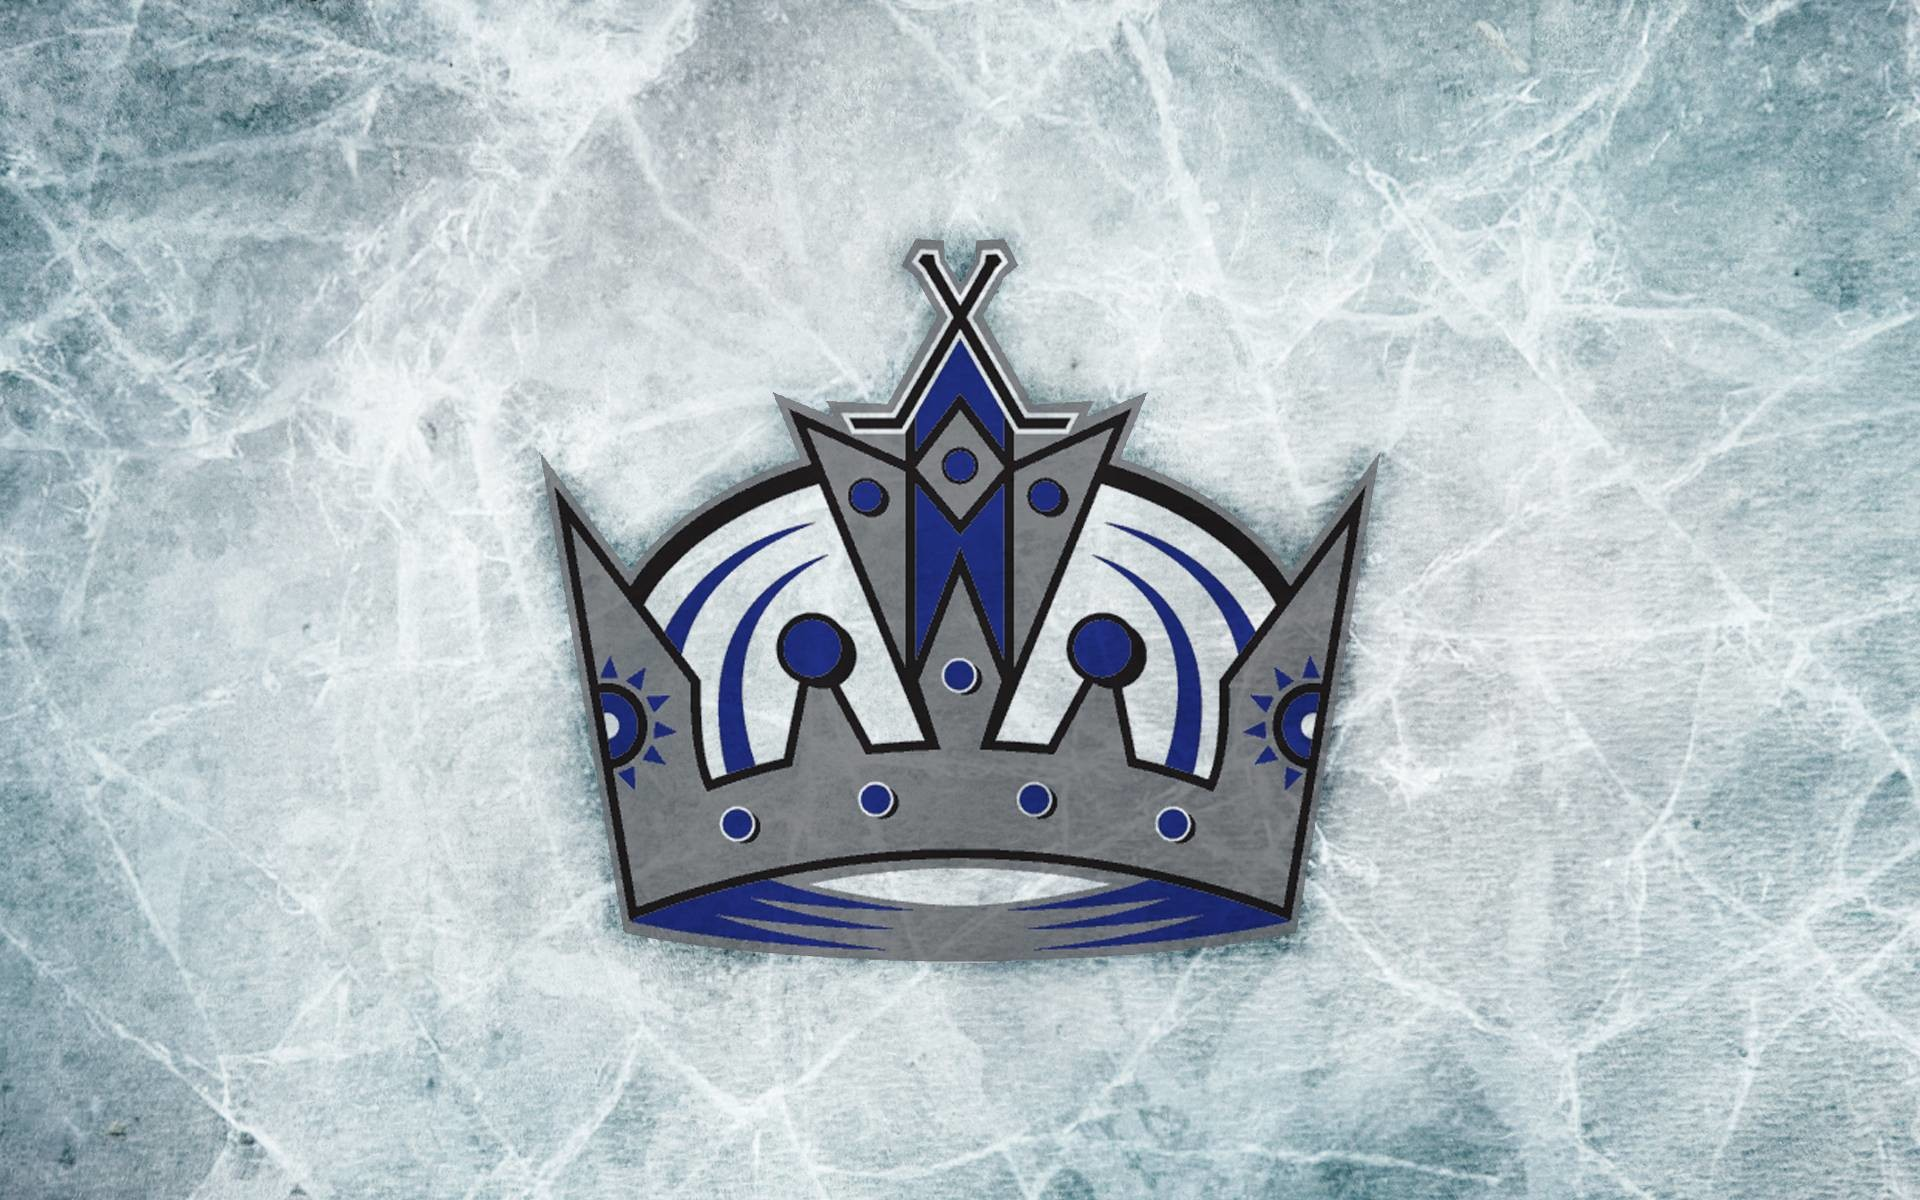 free los angeles kings picture background photos apple artworks best  wallpaper ever samsung wallpapers free download